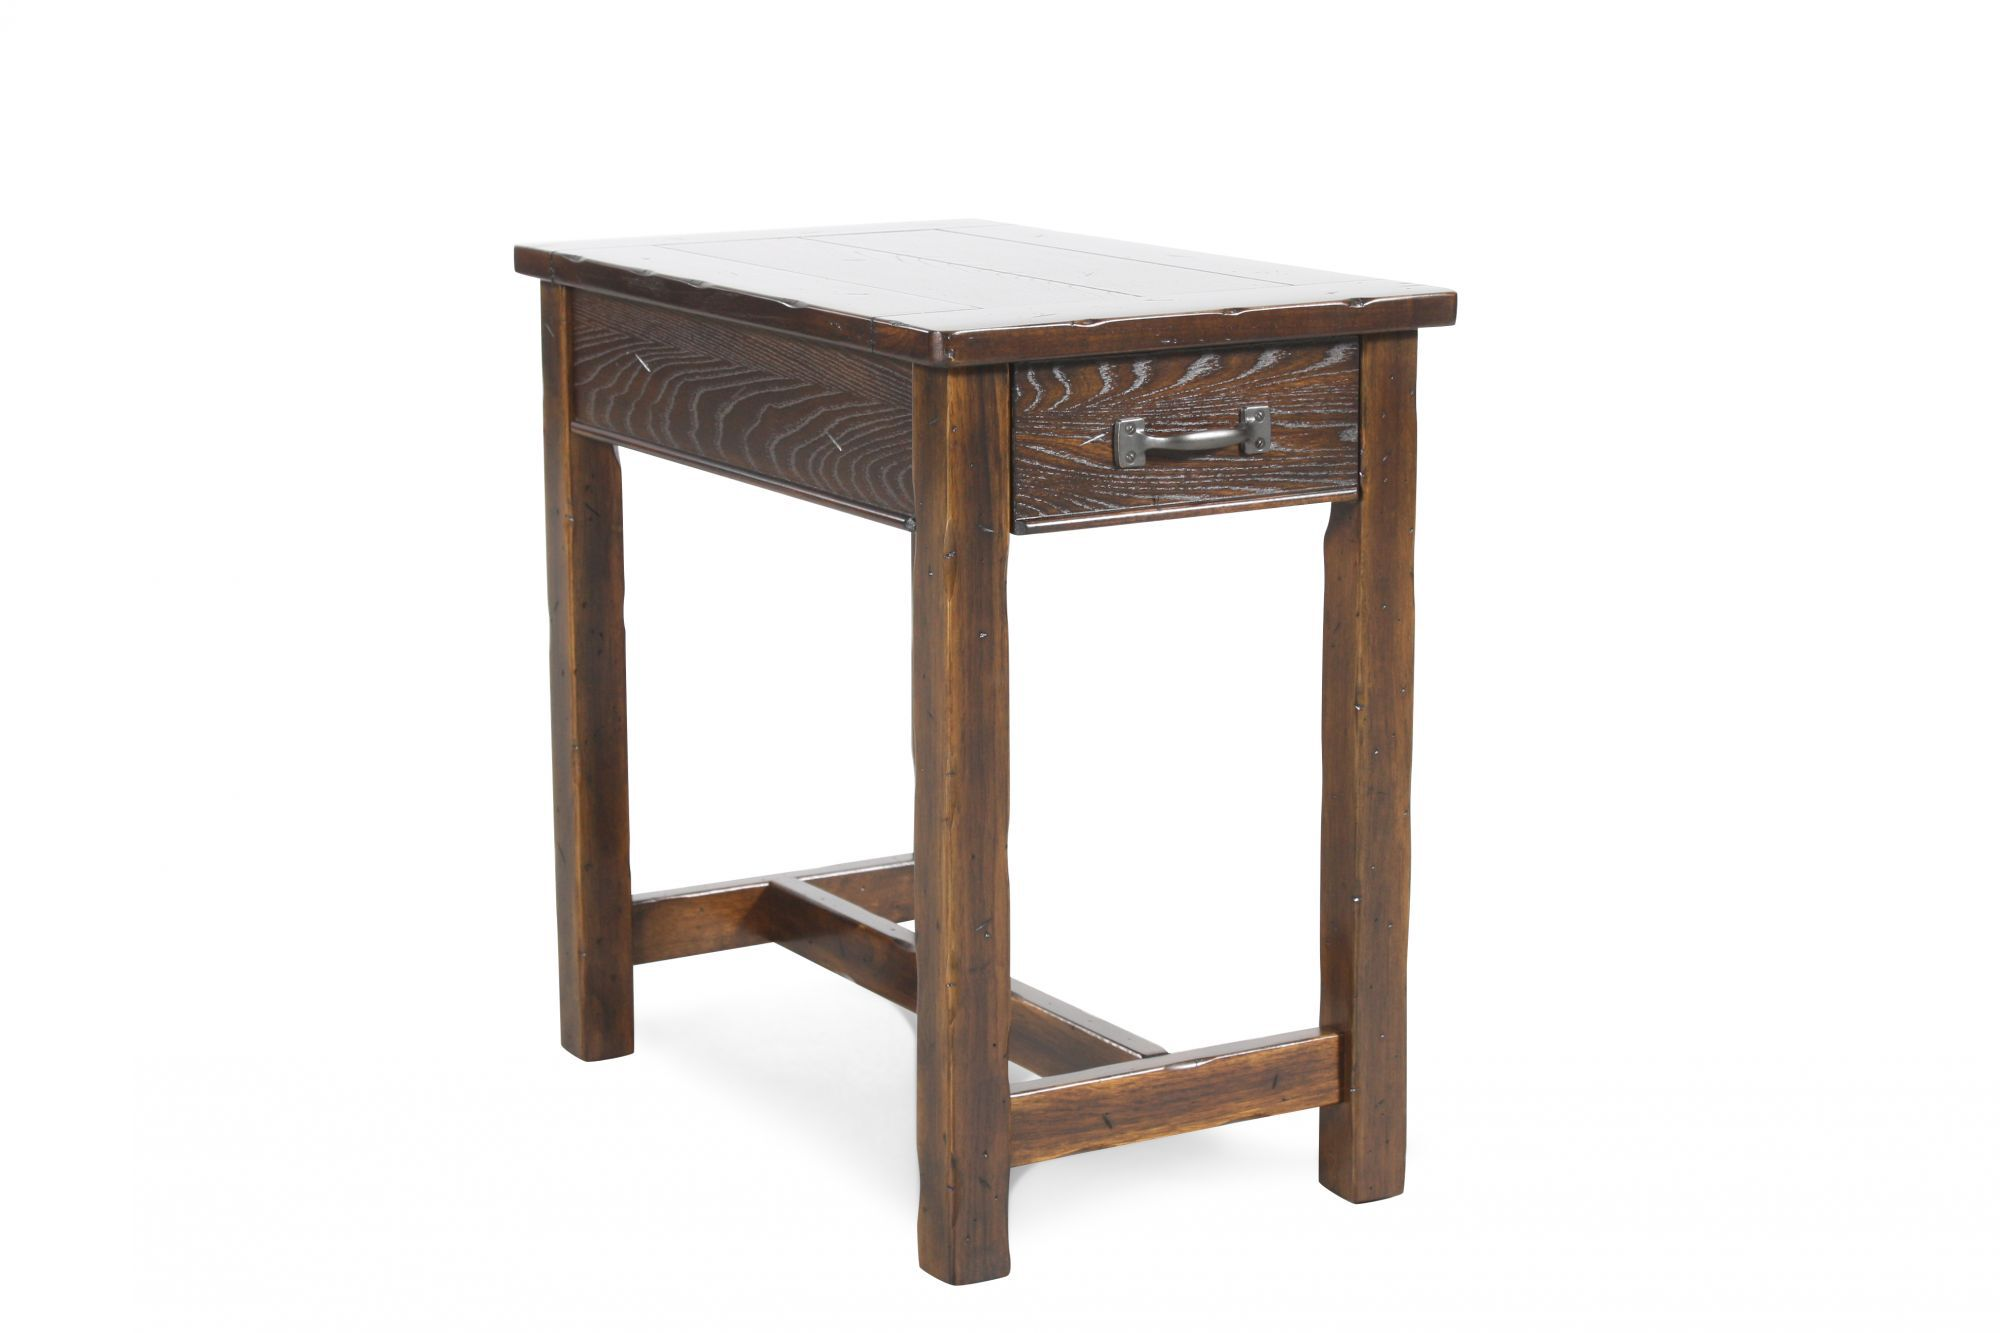 Modern Chairside Table Distressed Rectangular Contemporary Chairside Table In